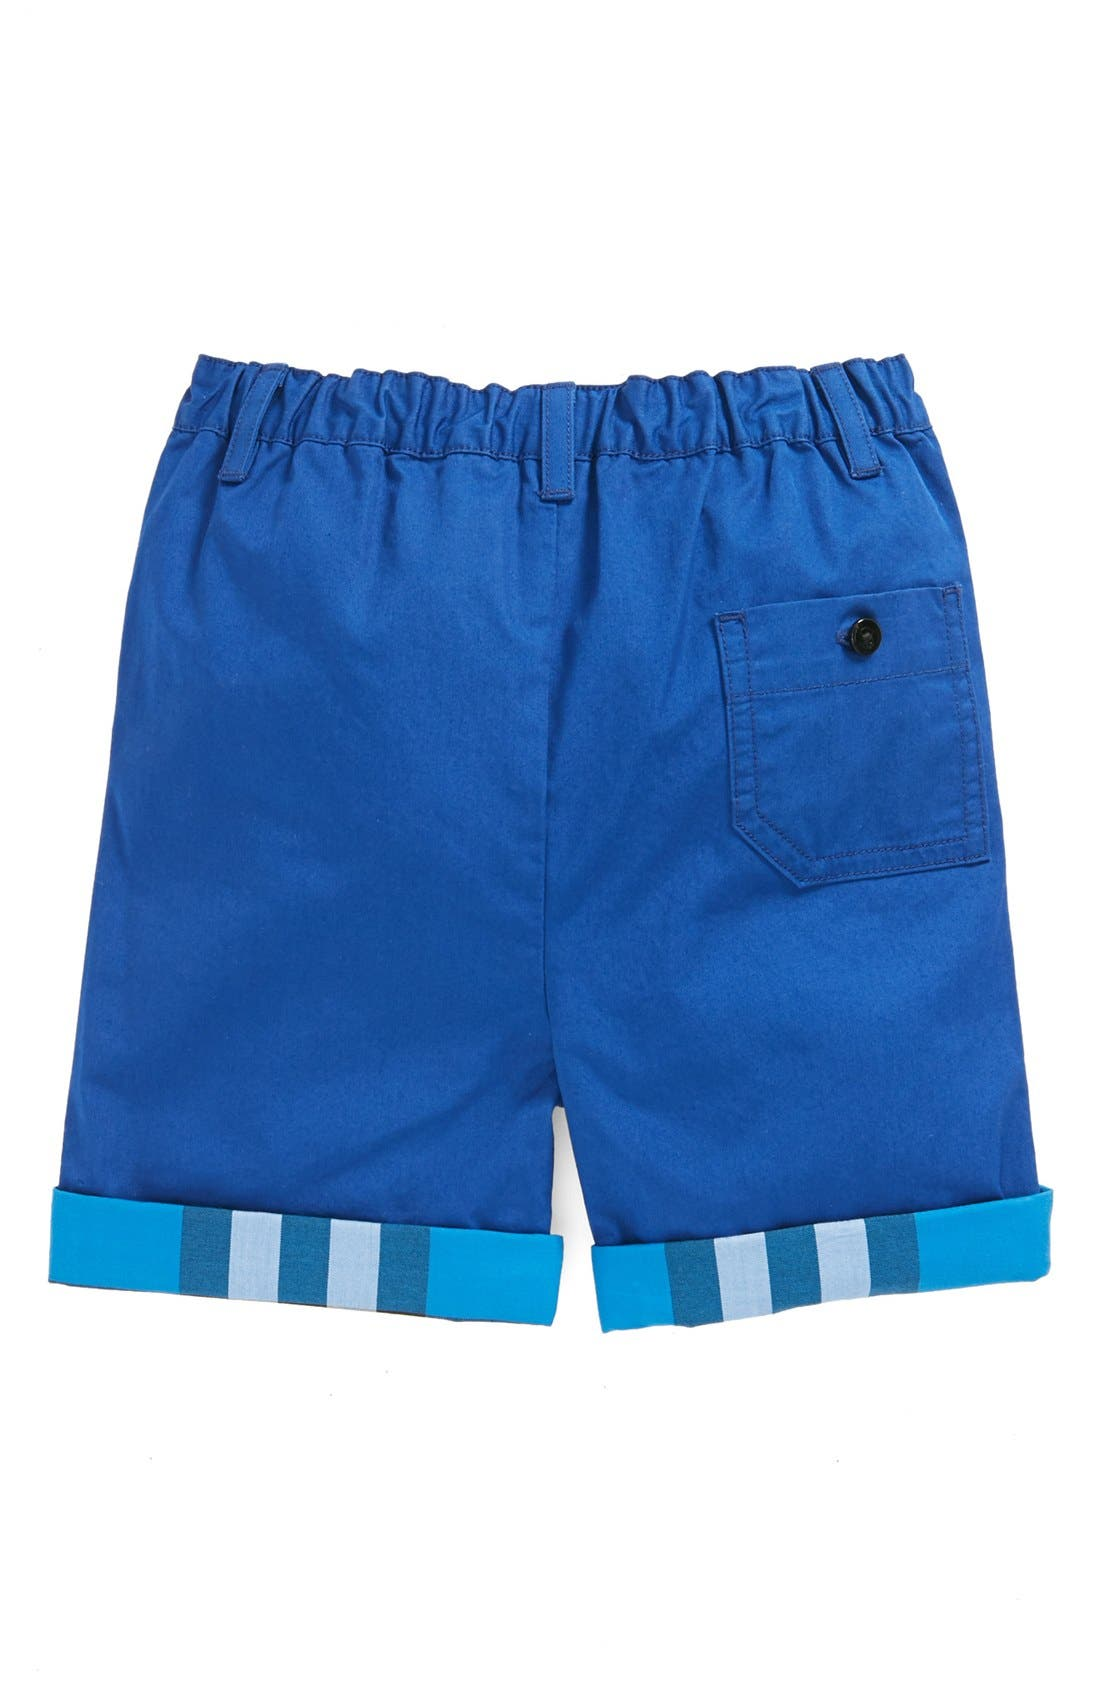 Alternate Image 2  - Burberry 'Seth' Shorts (Toddler Boys)